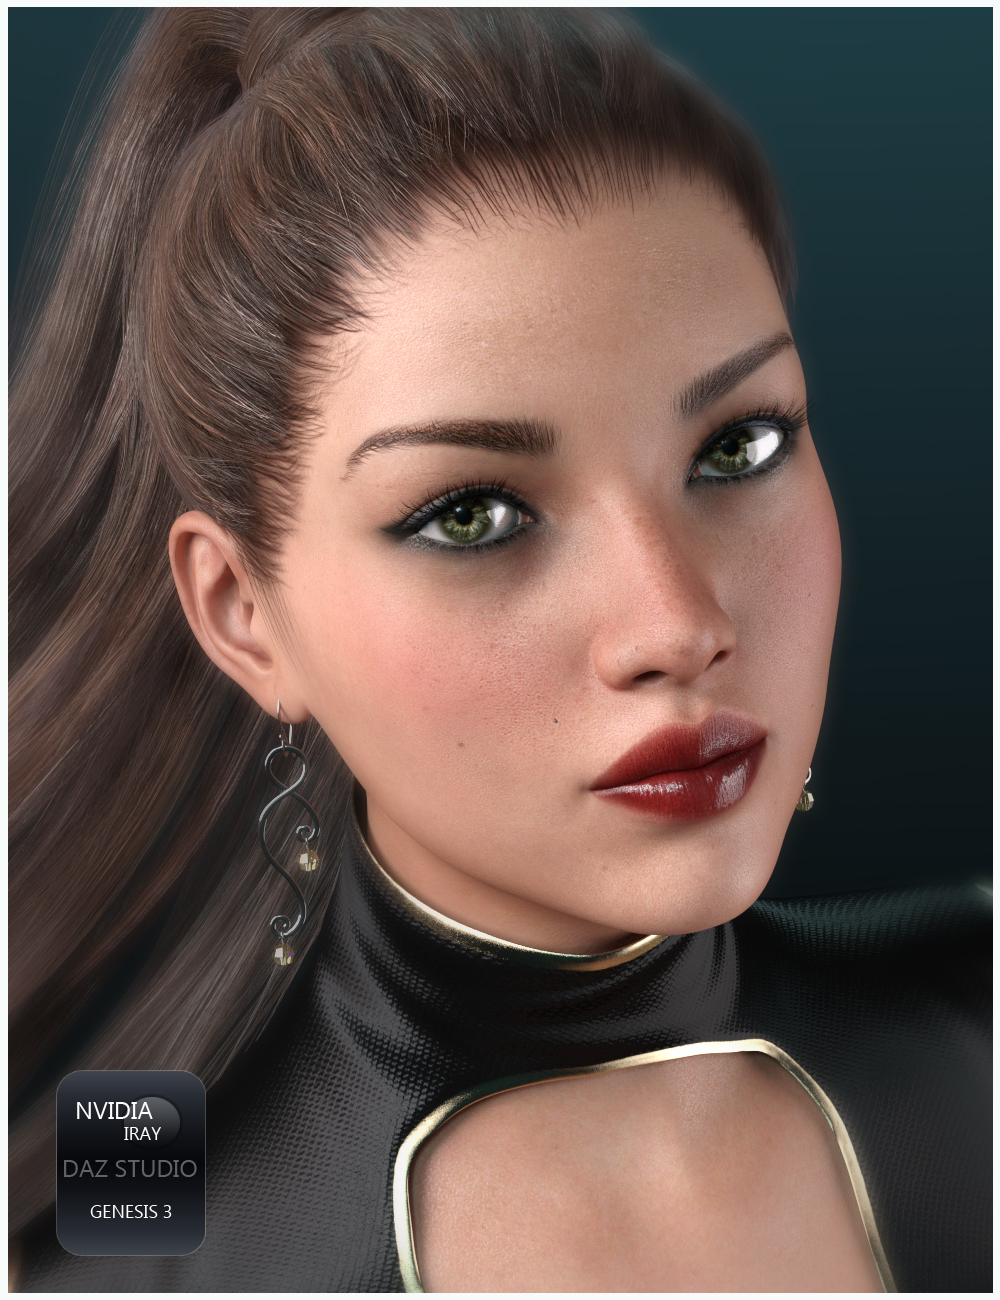 New Girl by Valery3D